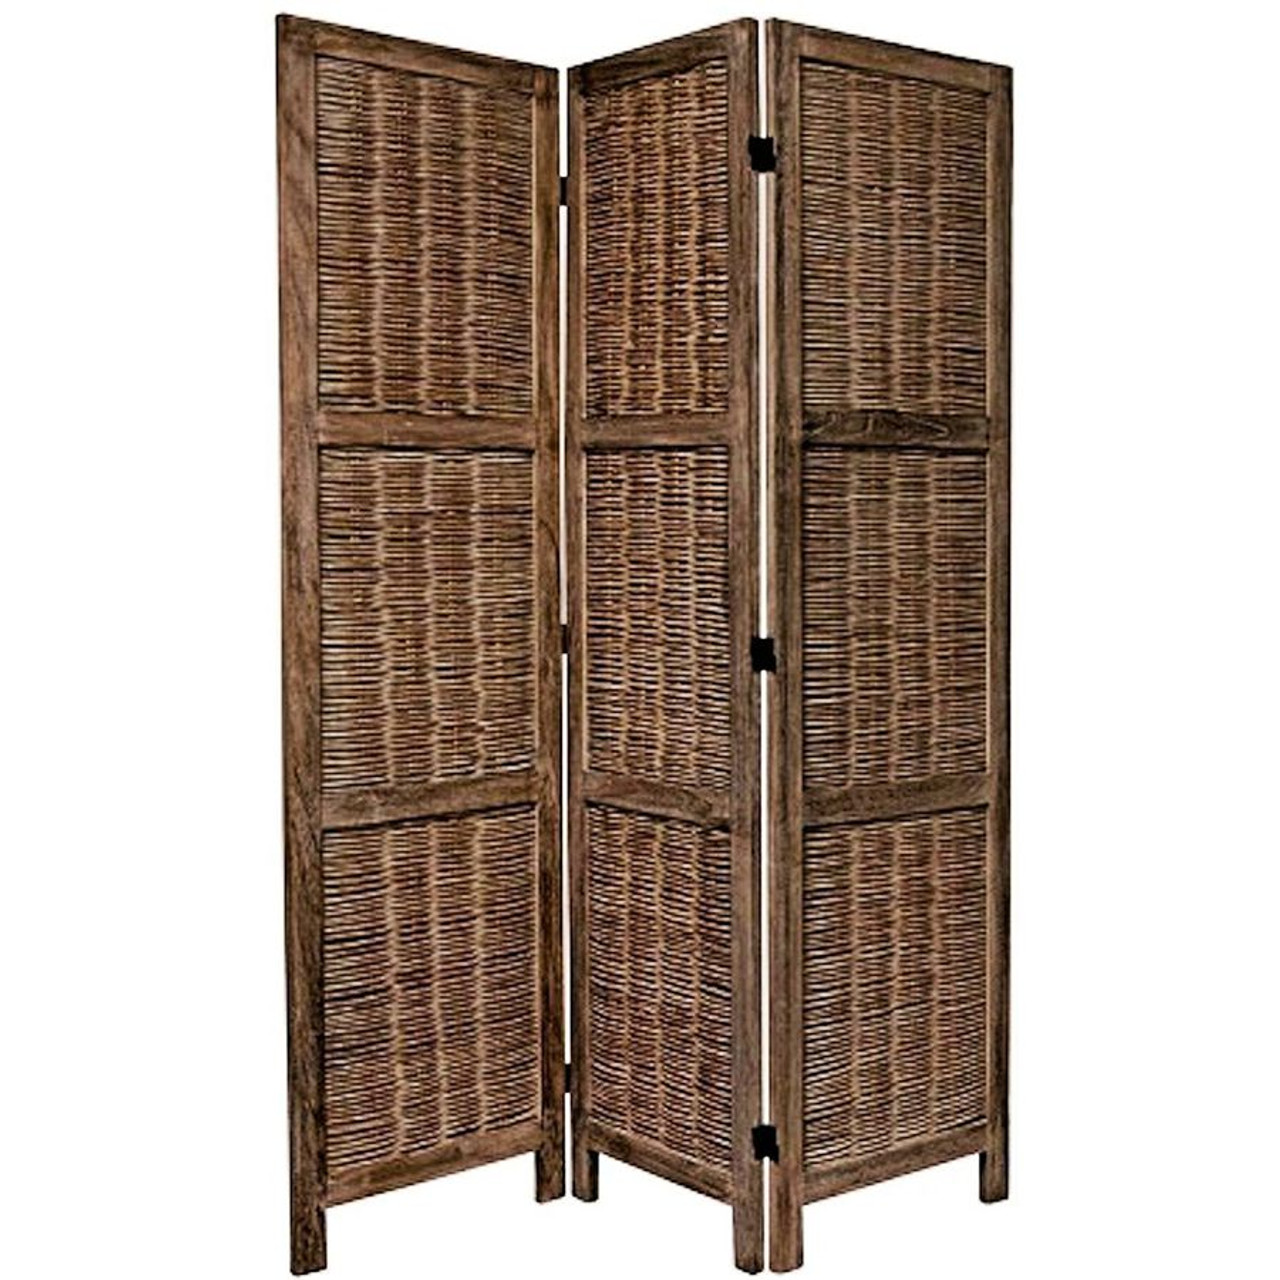 3 Panel Room Divider Wicker Weave Design Brown or White Color